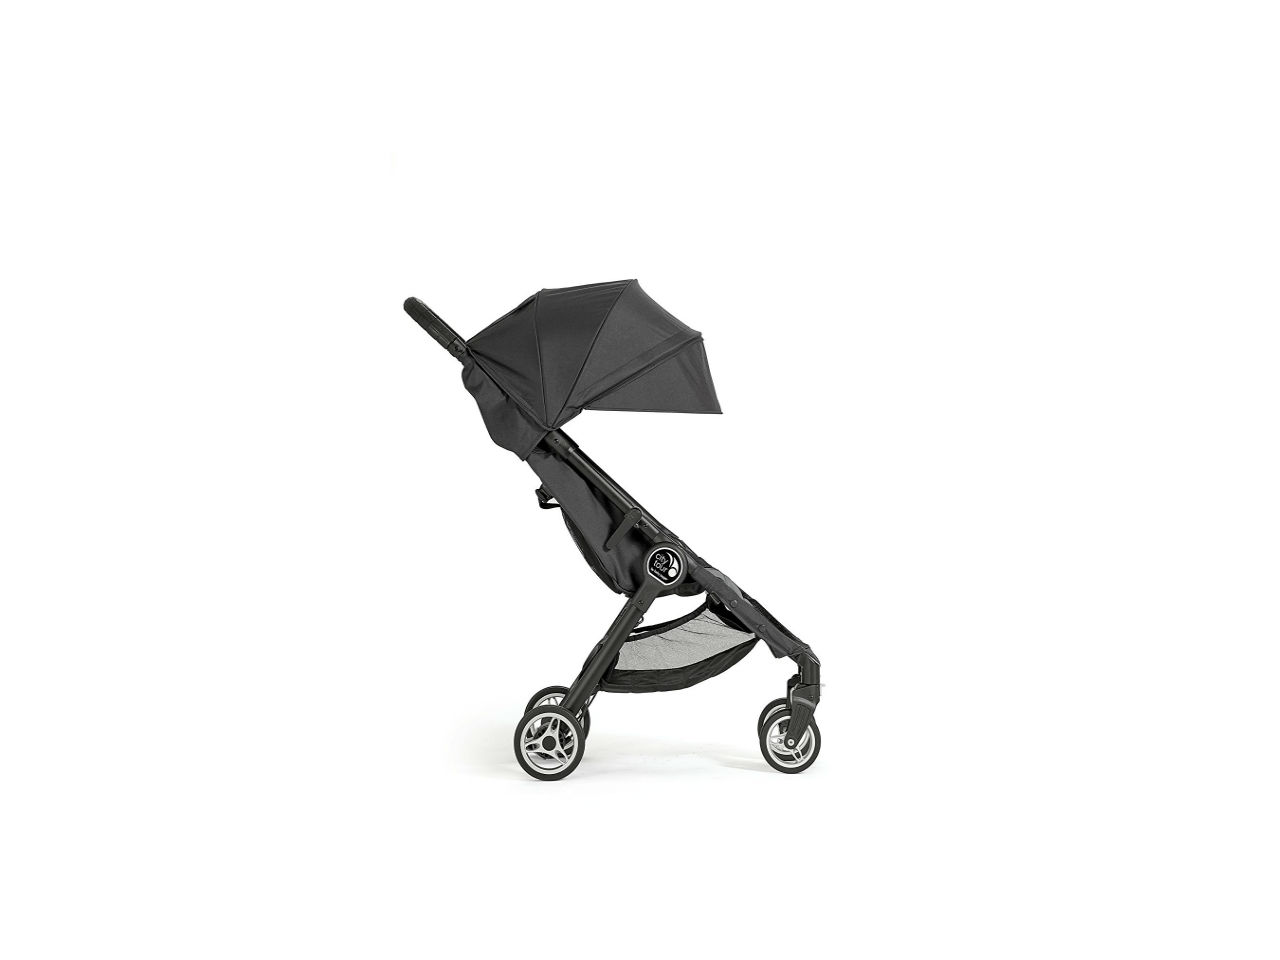 10167ee20396 Review: Baby Jogger City Tour - Today's Parent